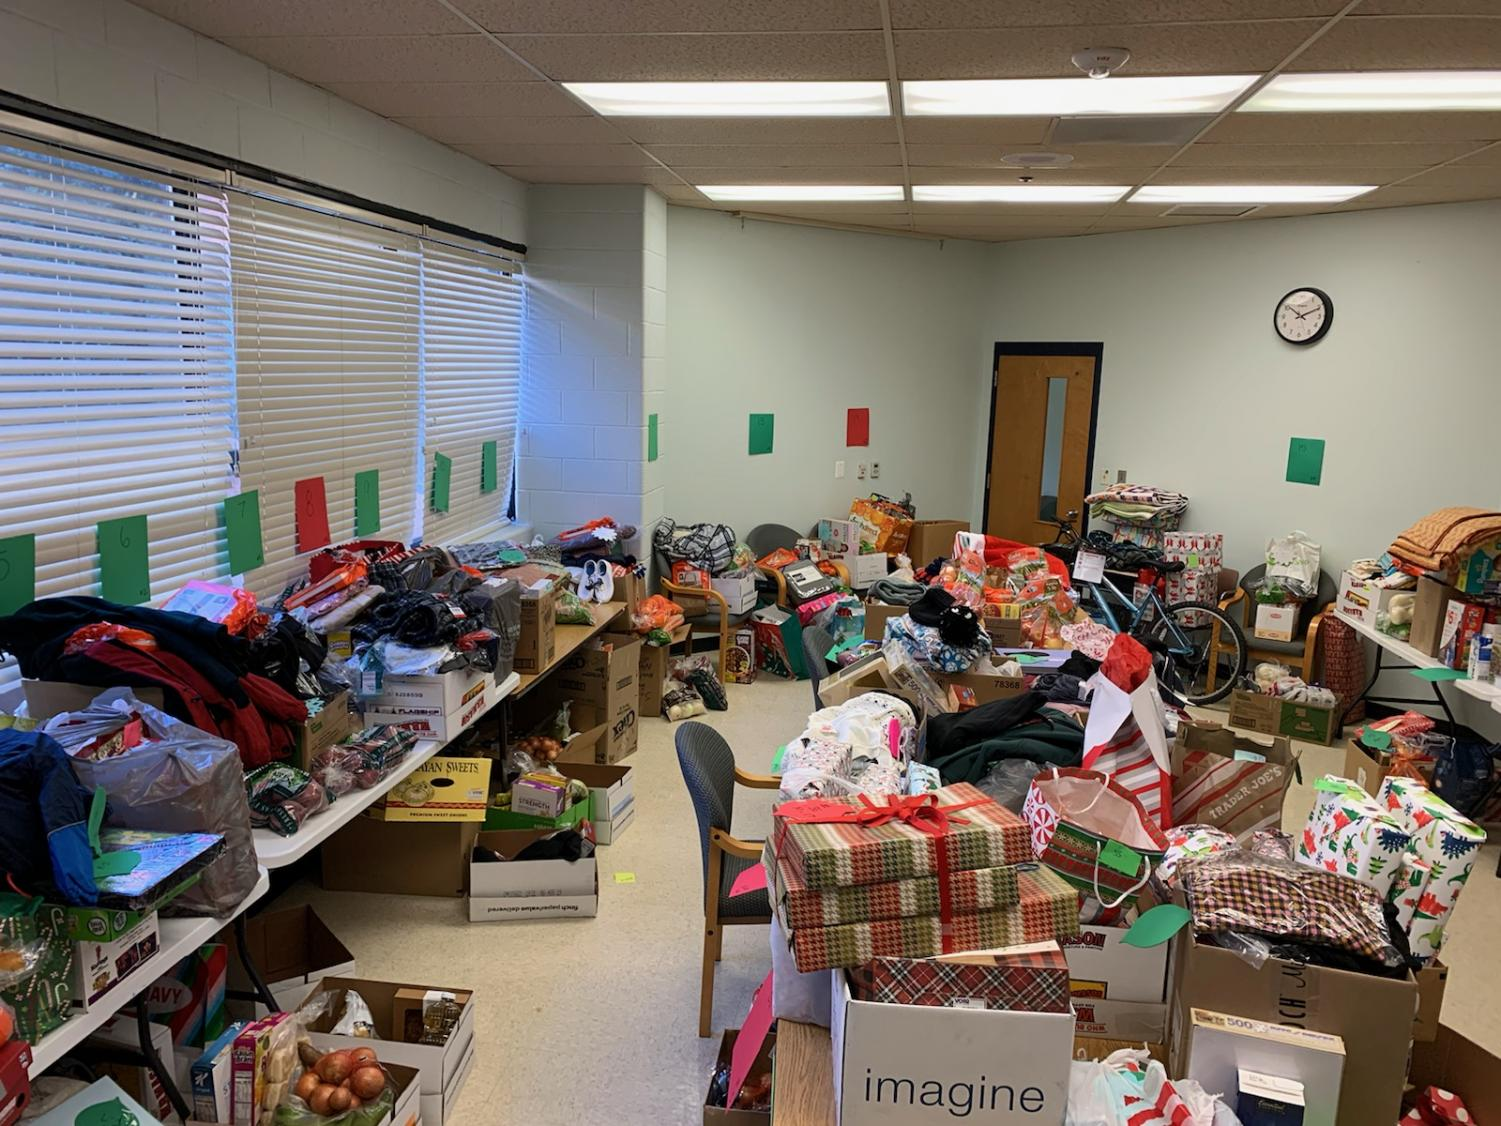 Presents and canned foods prepared for families in need during the holidays at Watkins Mill High School.